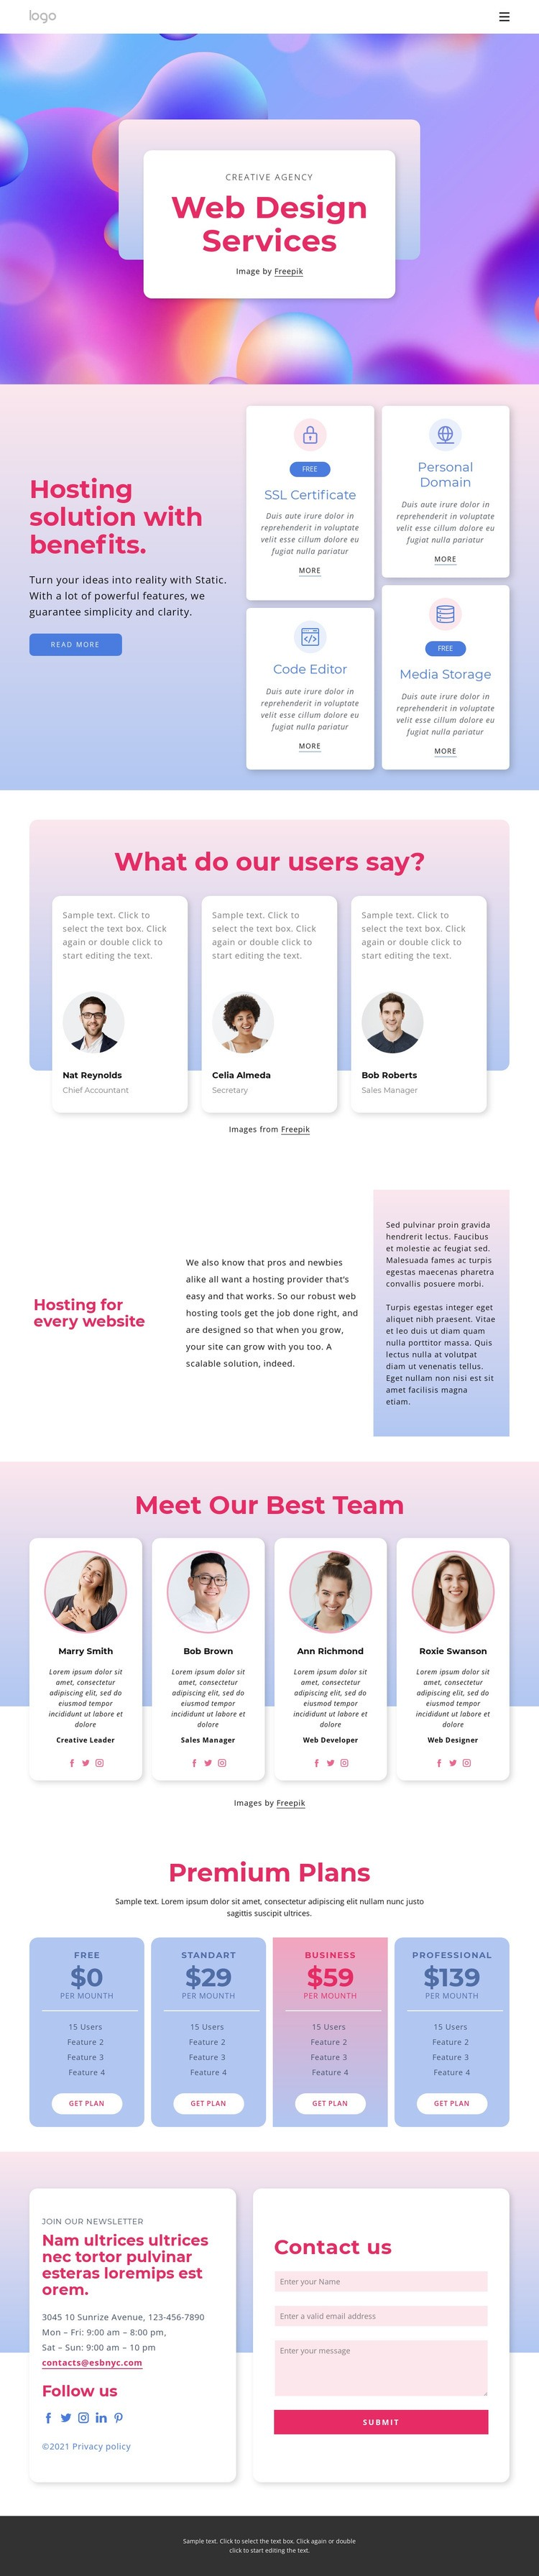 Website design with hosting Html Code Example